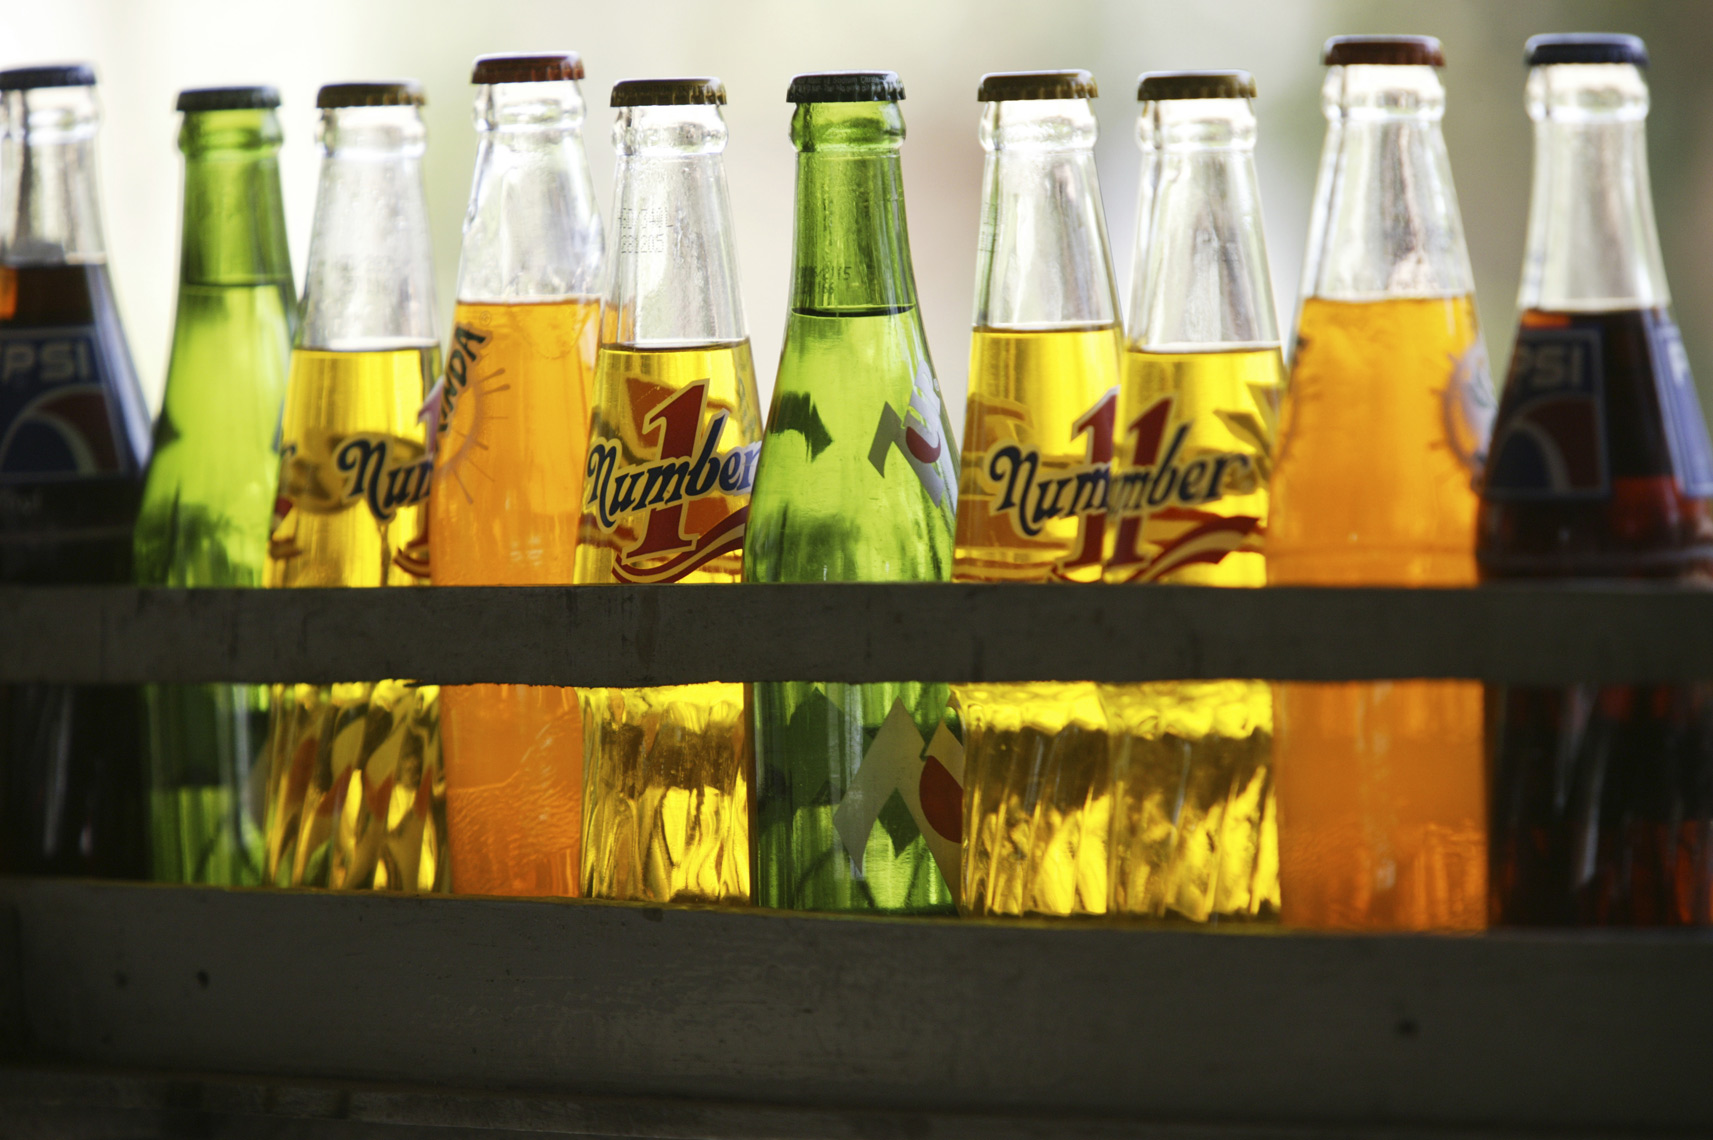 Softdrink botttle backlight/Steve Mason Photography